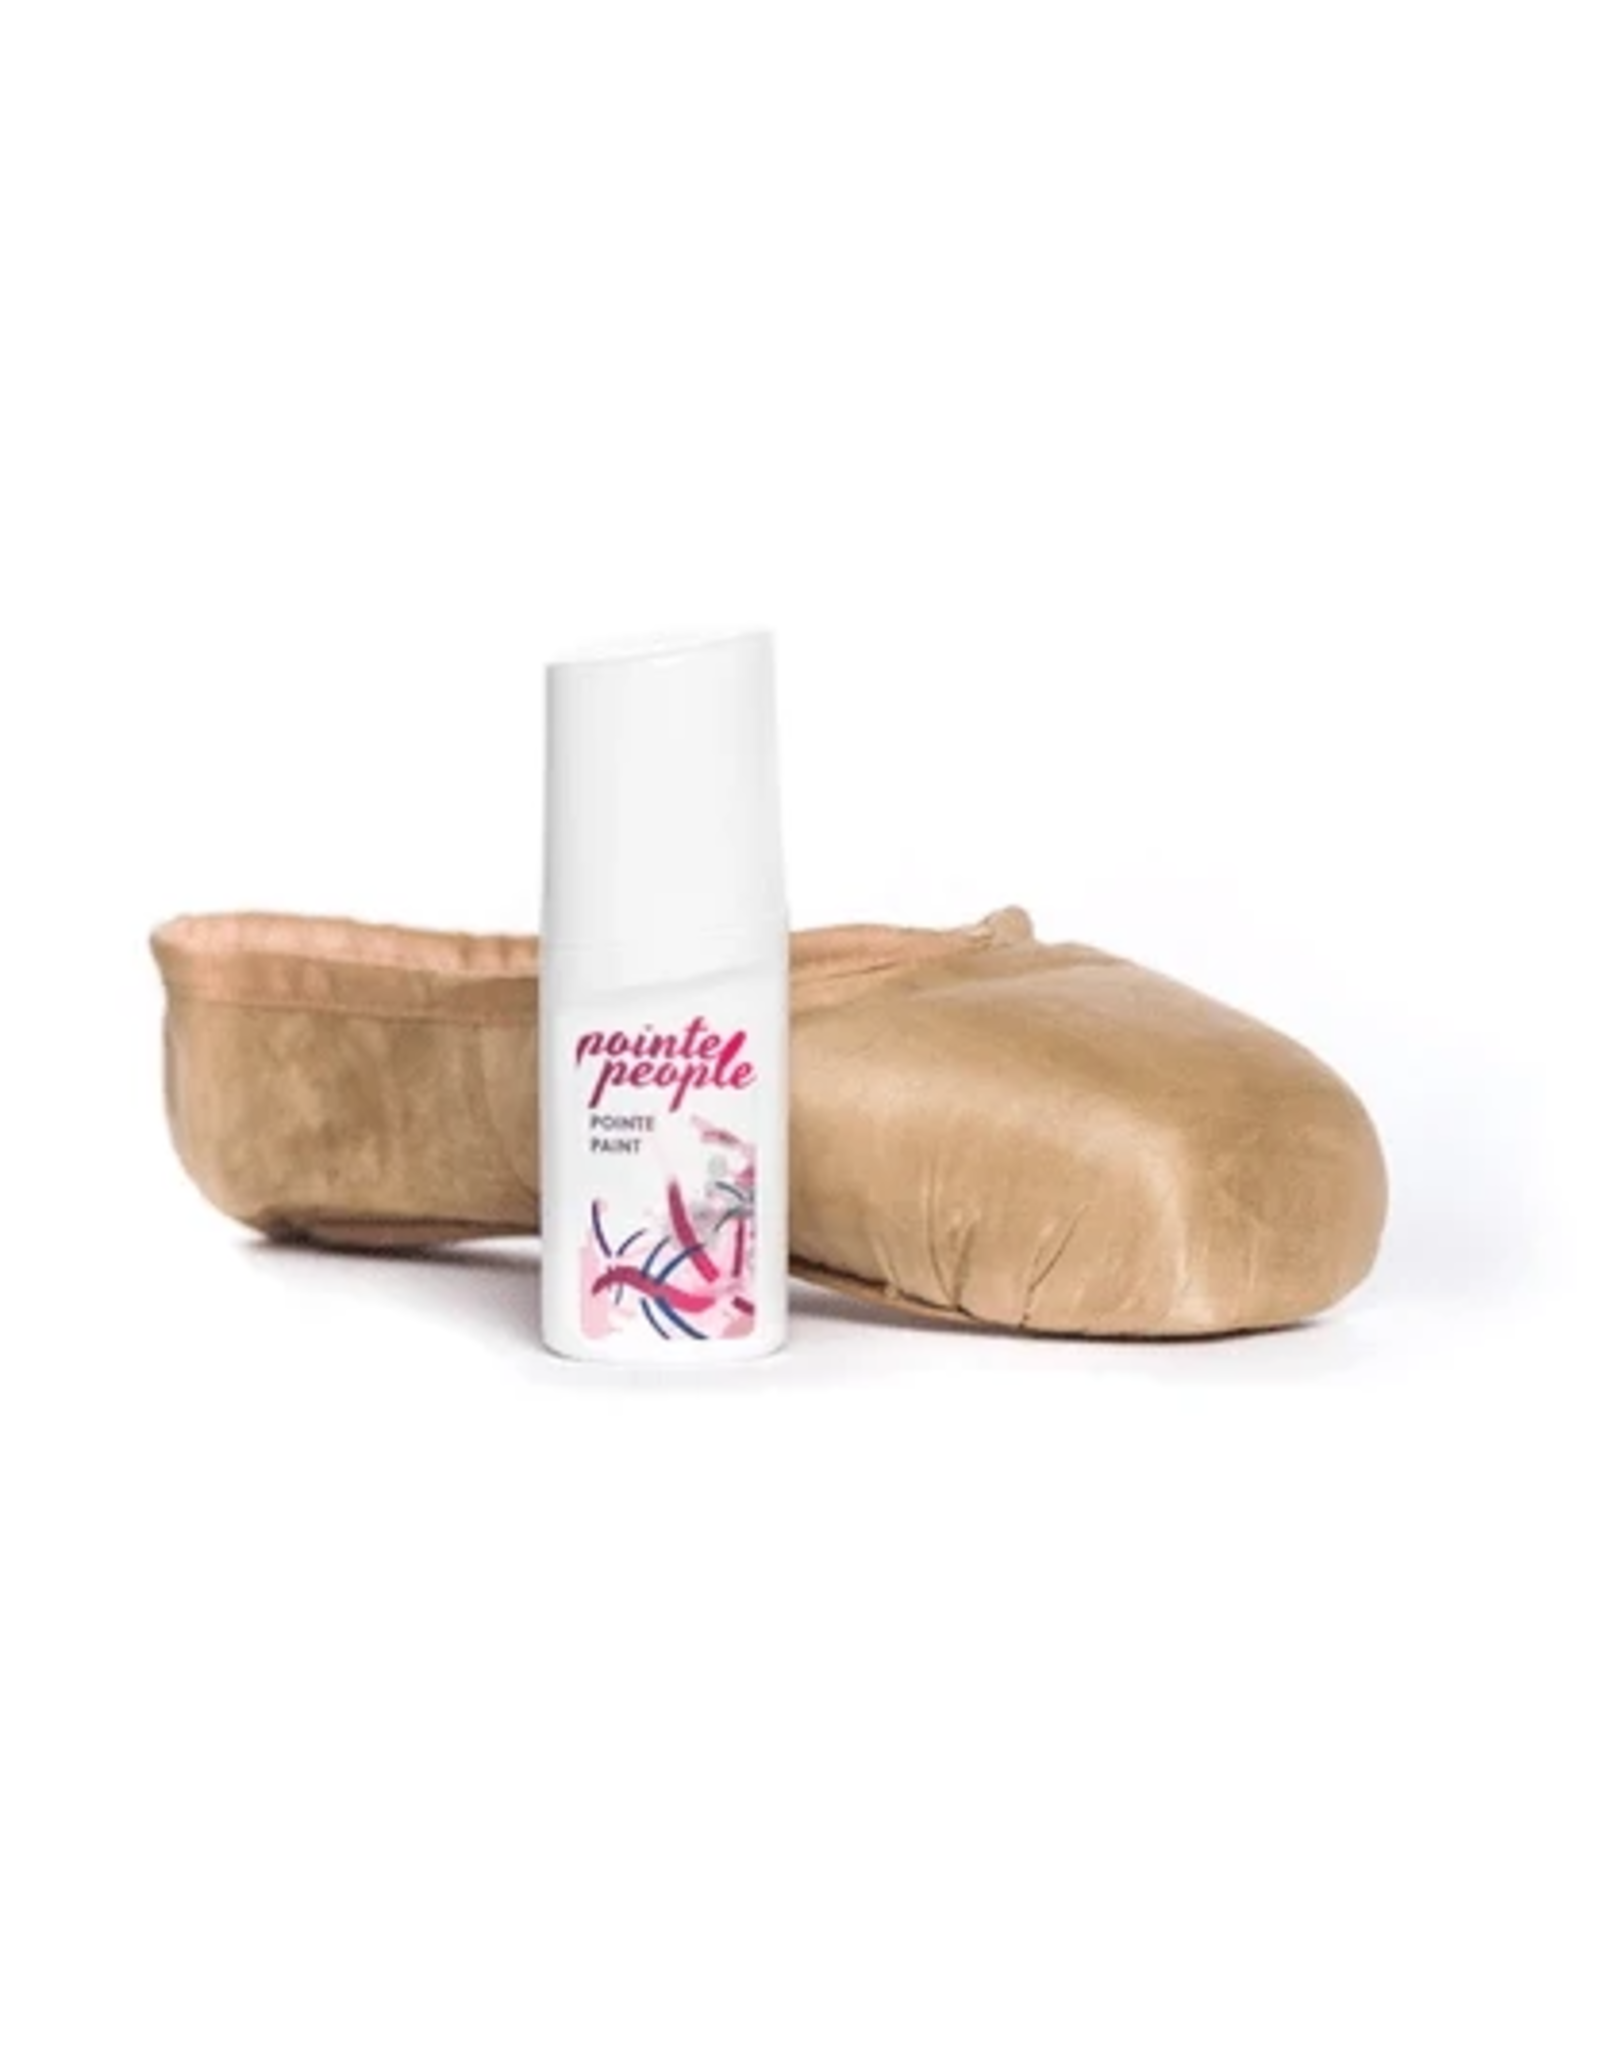 Pointe People Pointe Shoe Paint